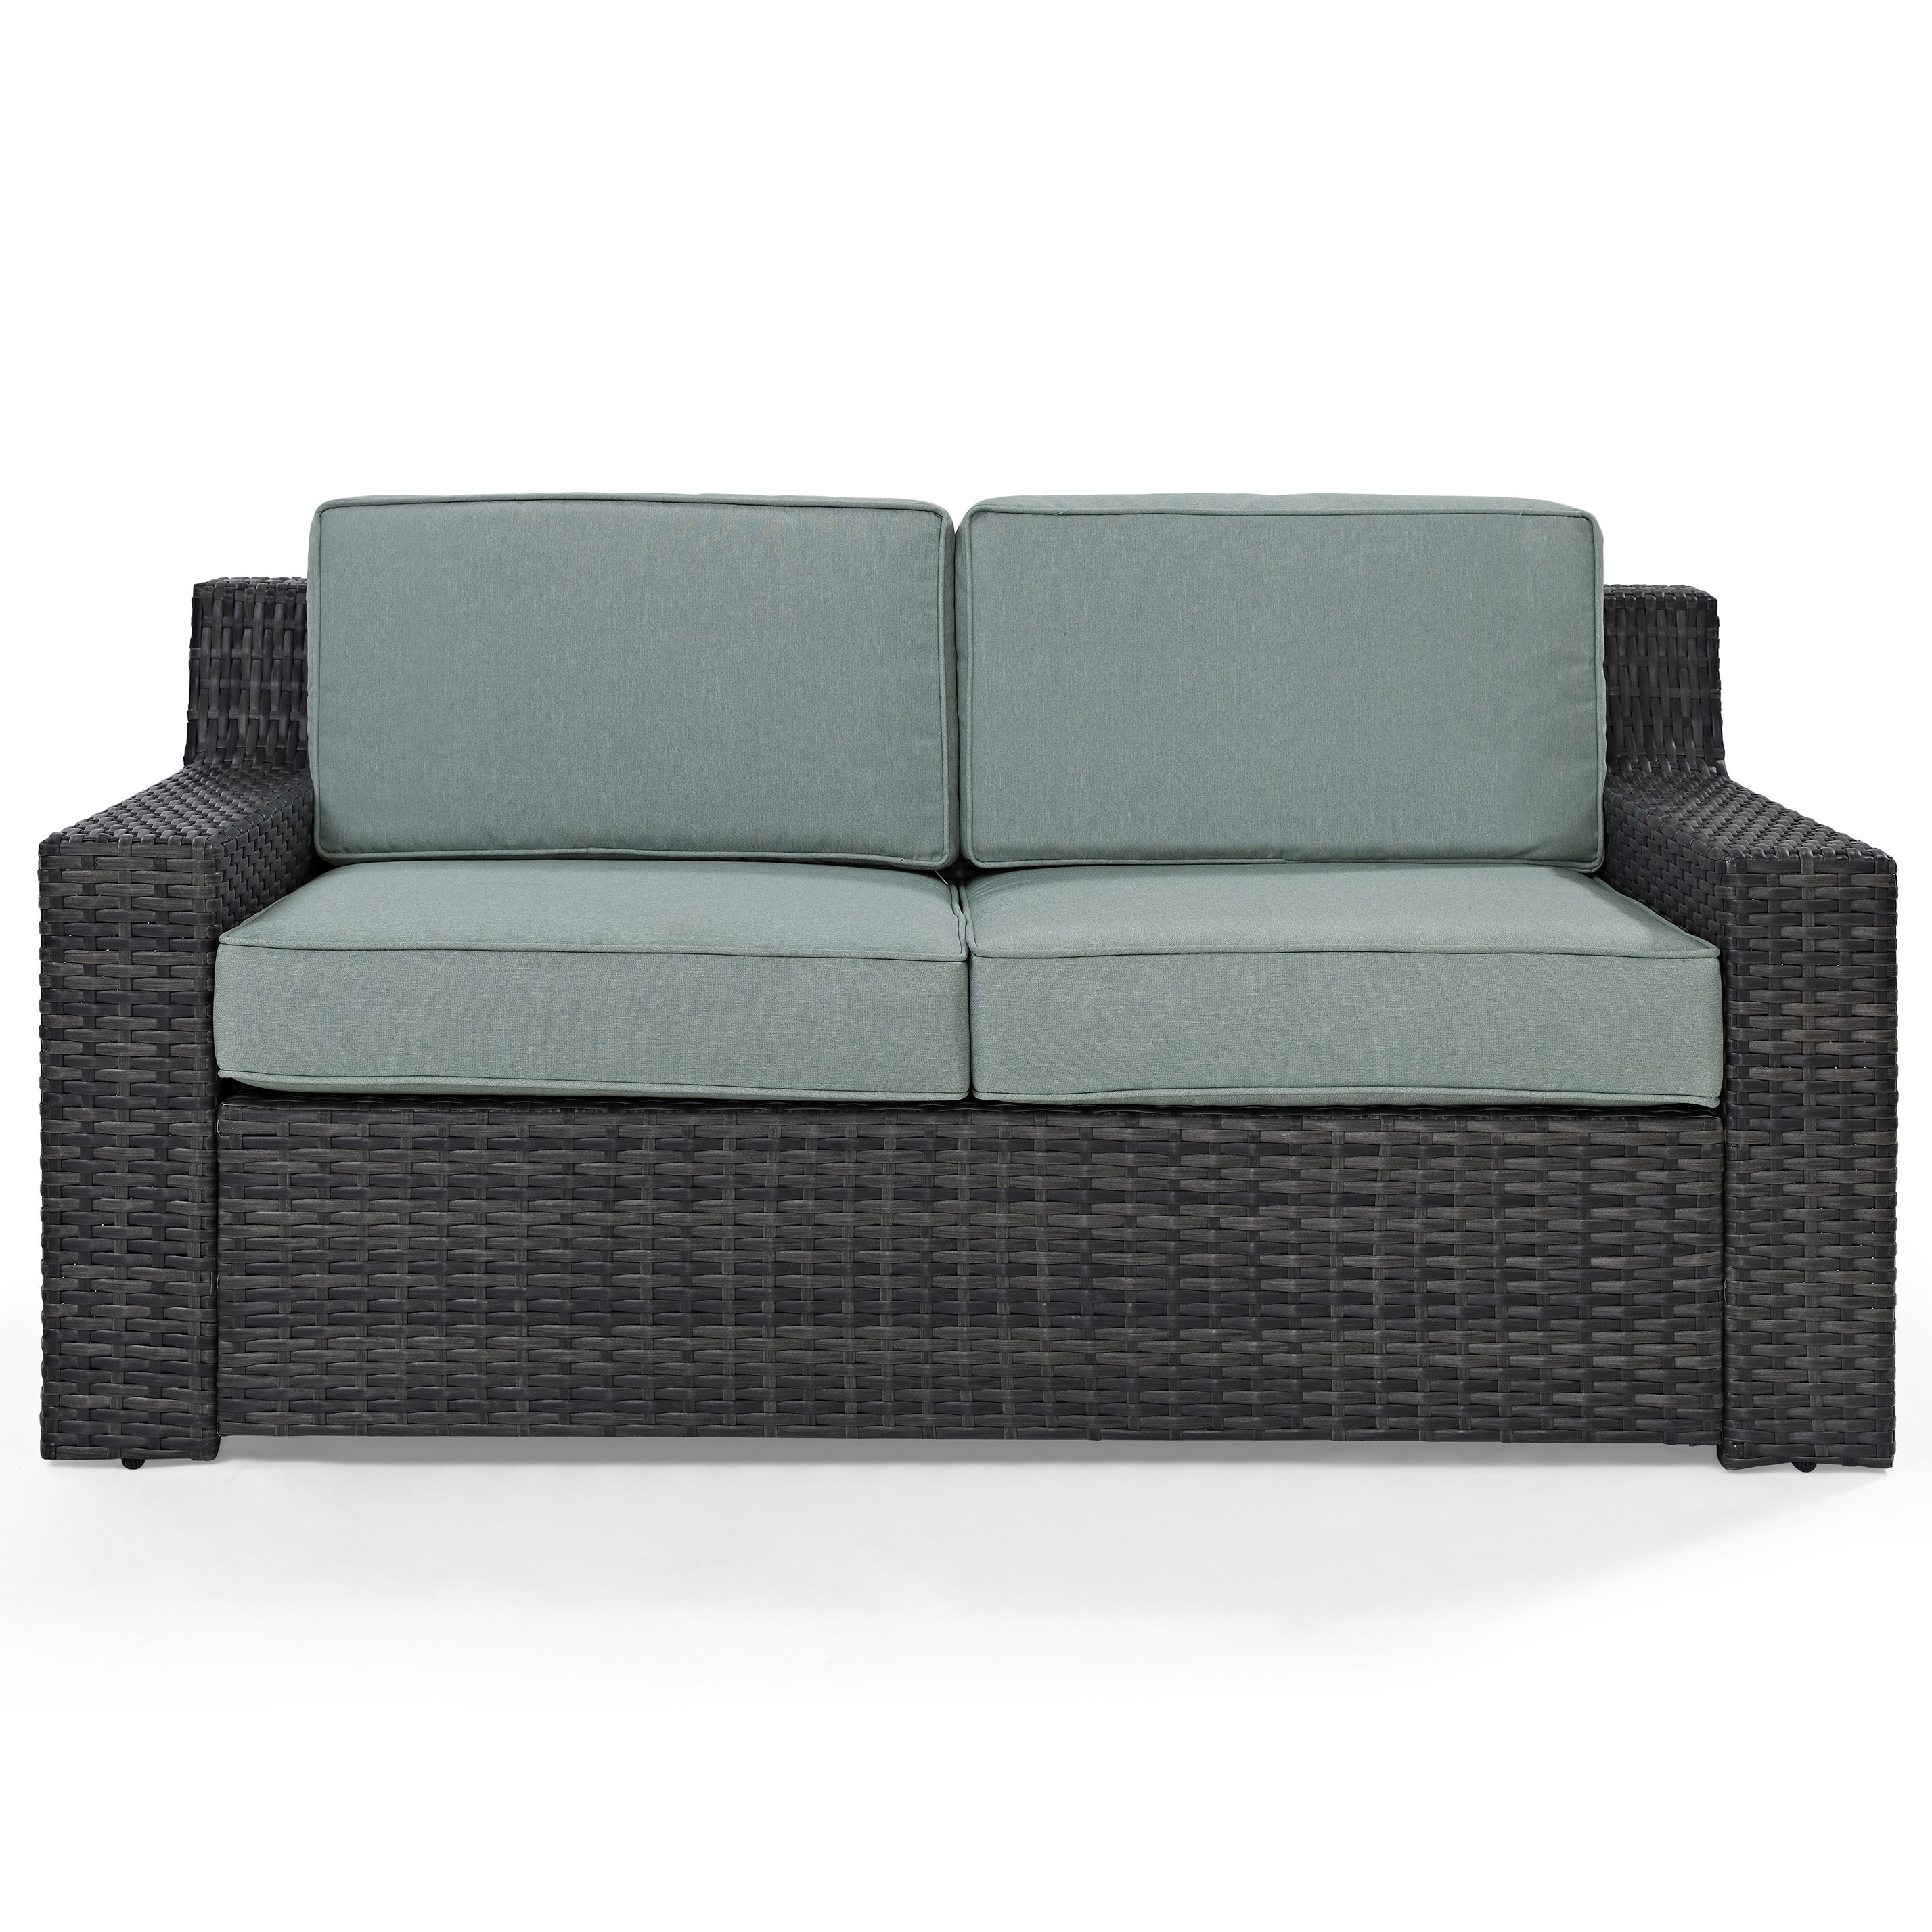 Mosca Patio Loveseats With Cushions For Well Liked Linwood Loveseat With Cushions (View 17 of 20)